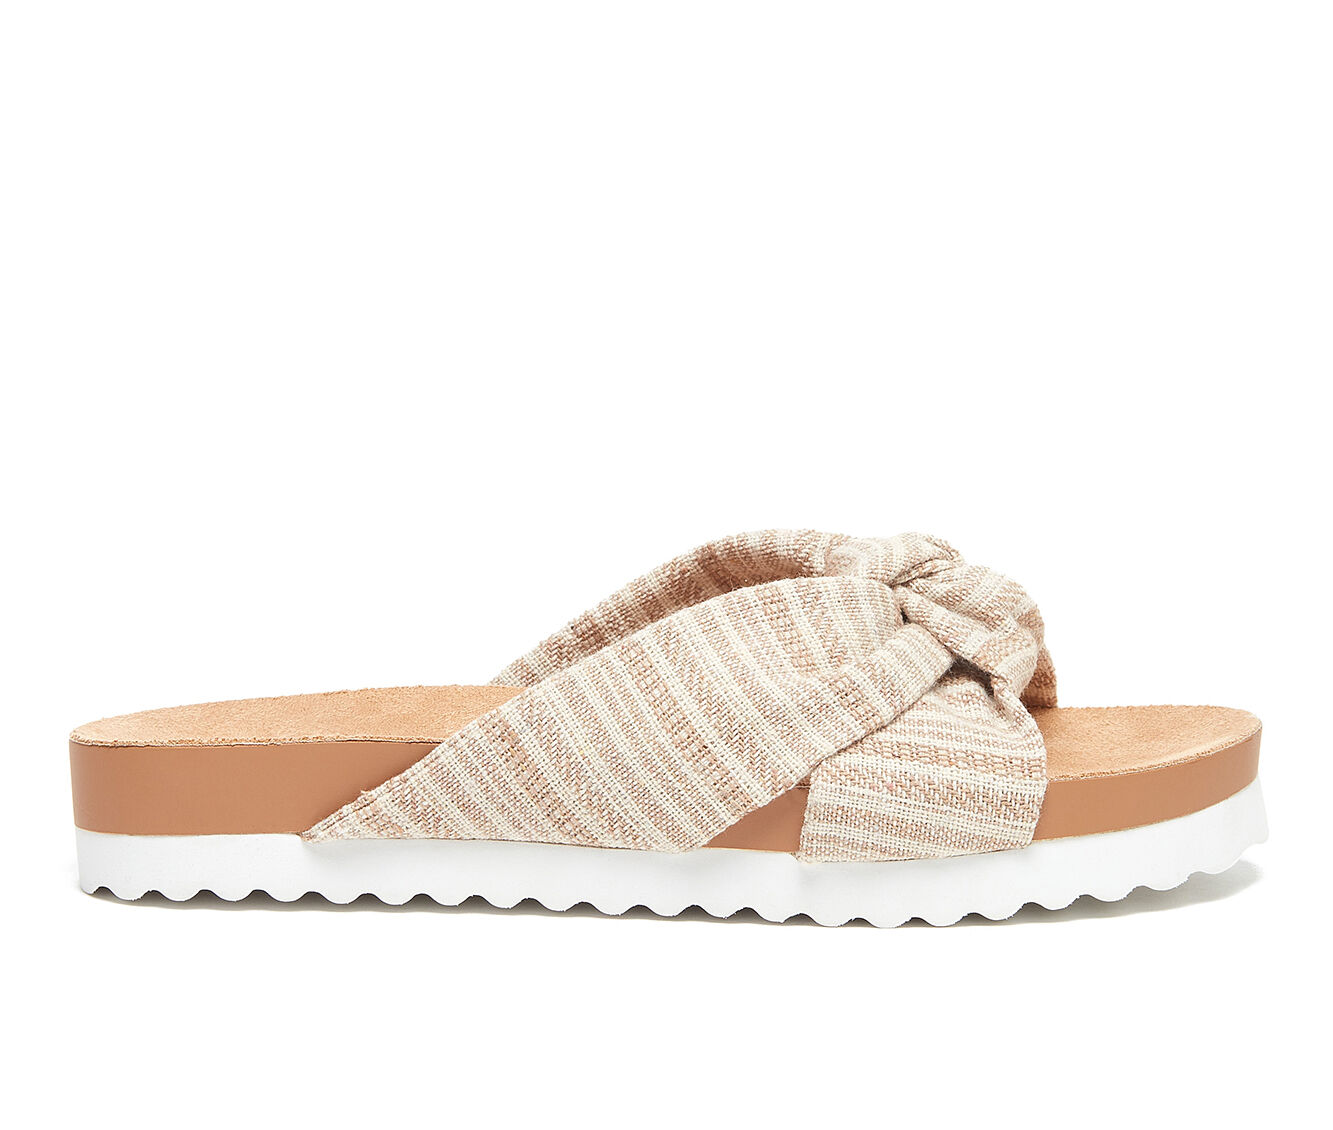 Purchase Price Women's Rocket Dog Loving Flatform Sandals Natural